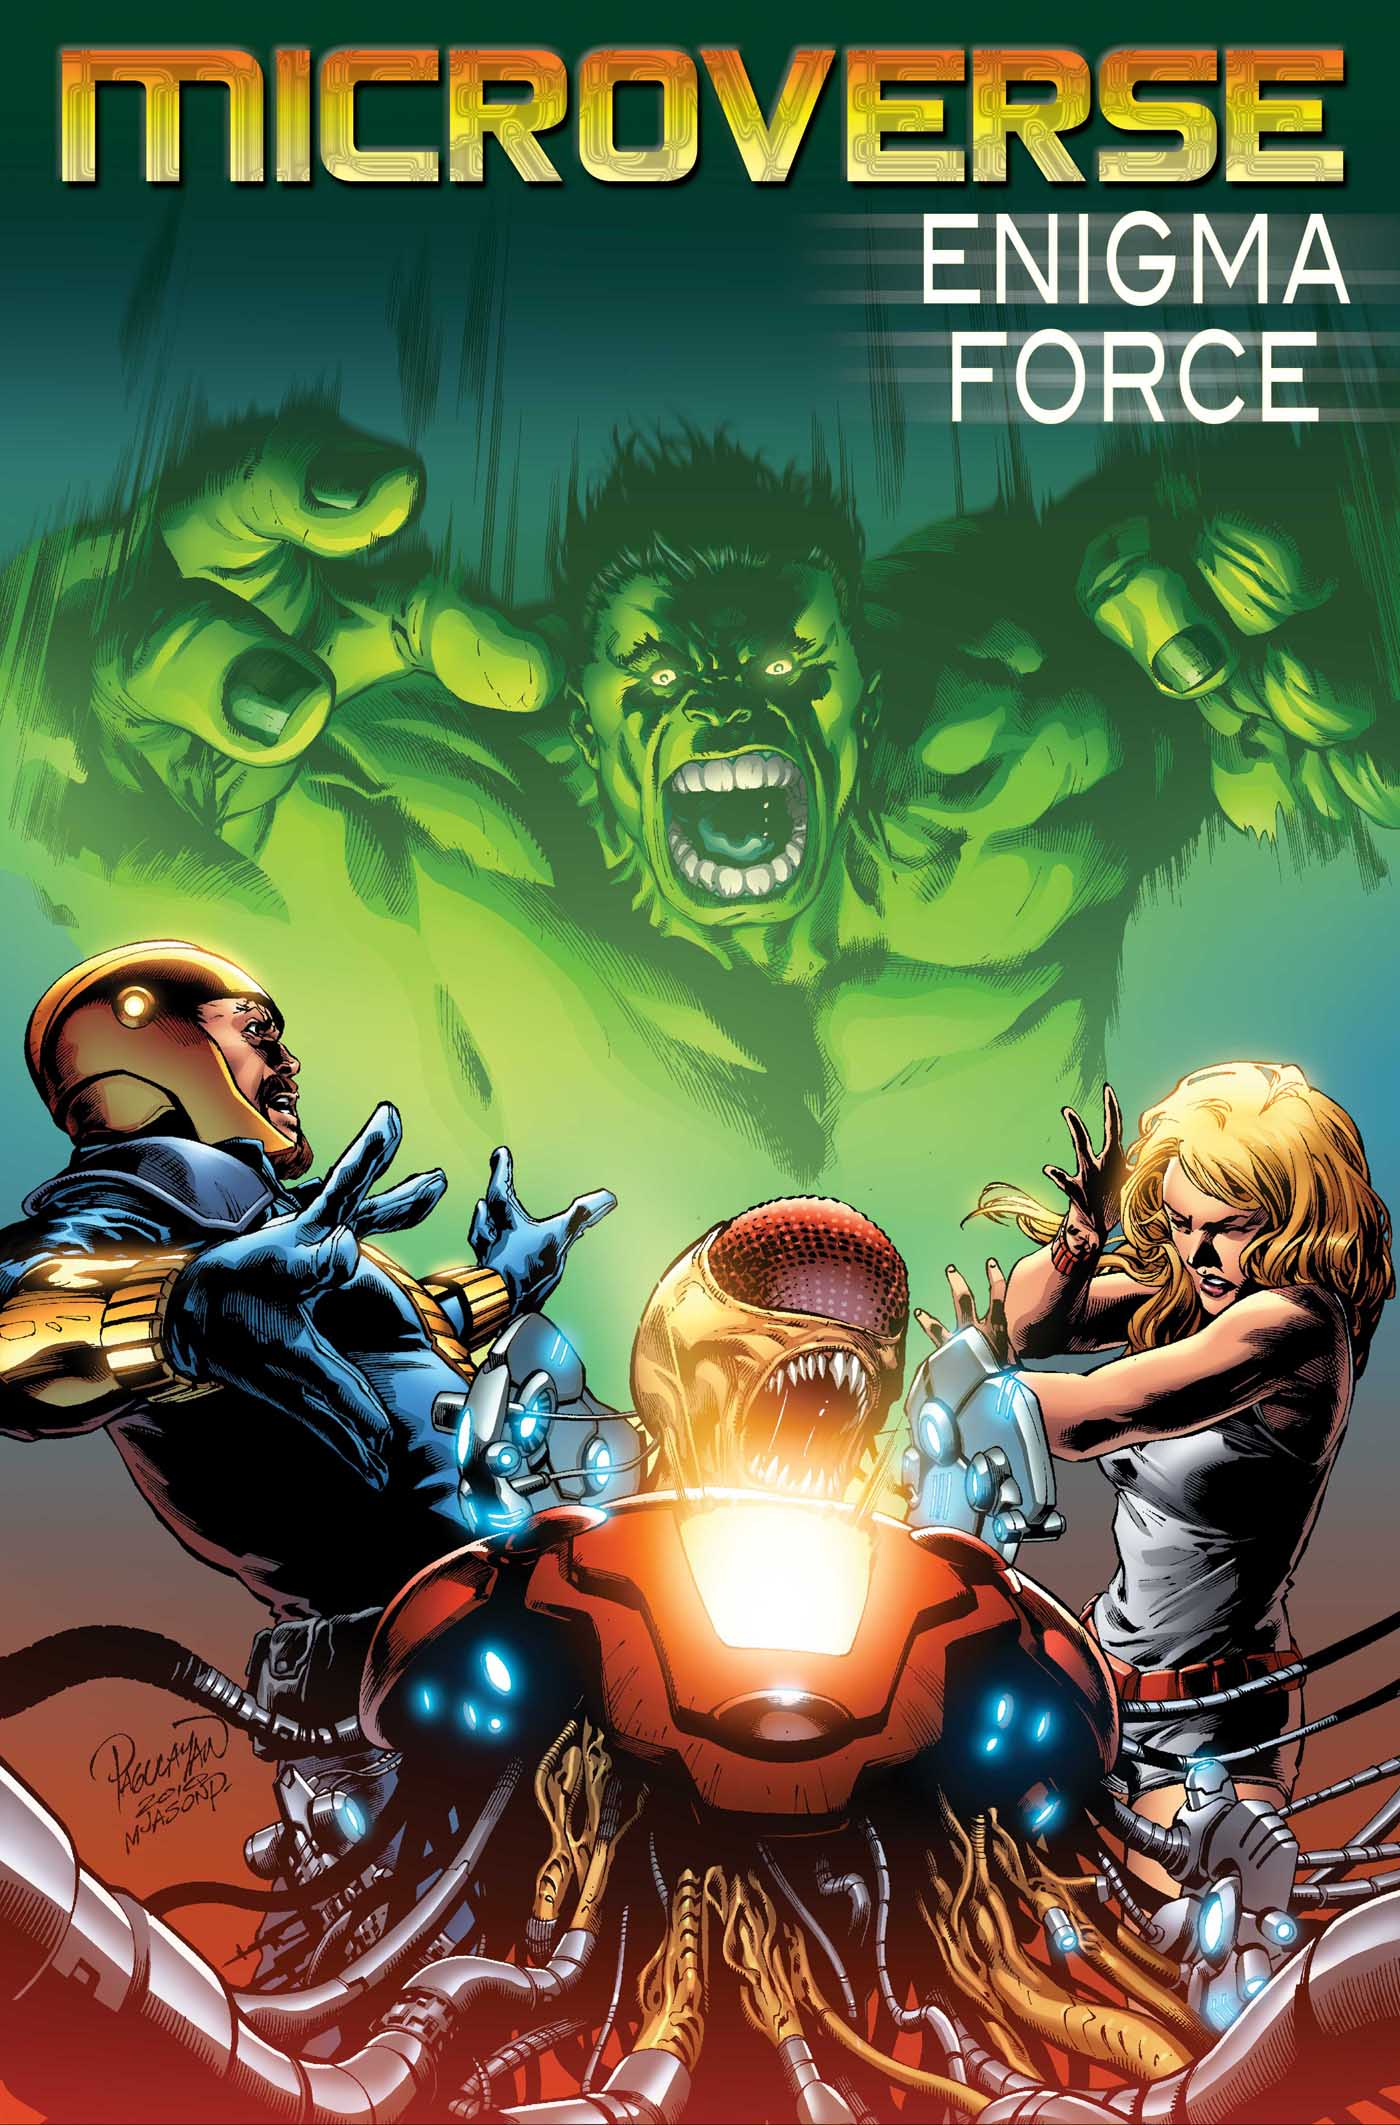 Microverse: Enigma Force (2010) #2